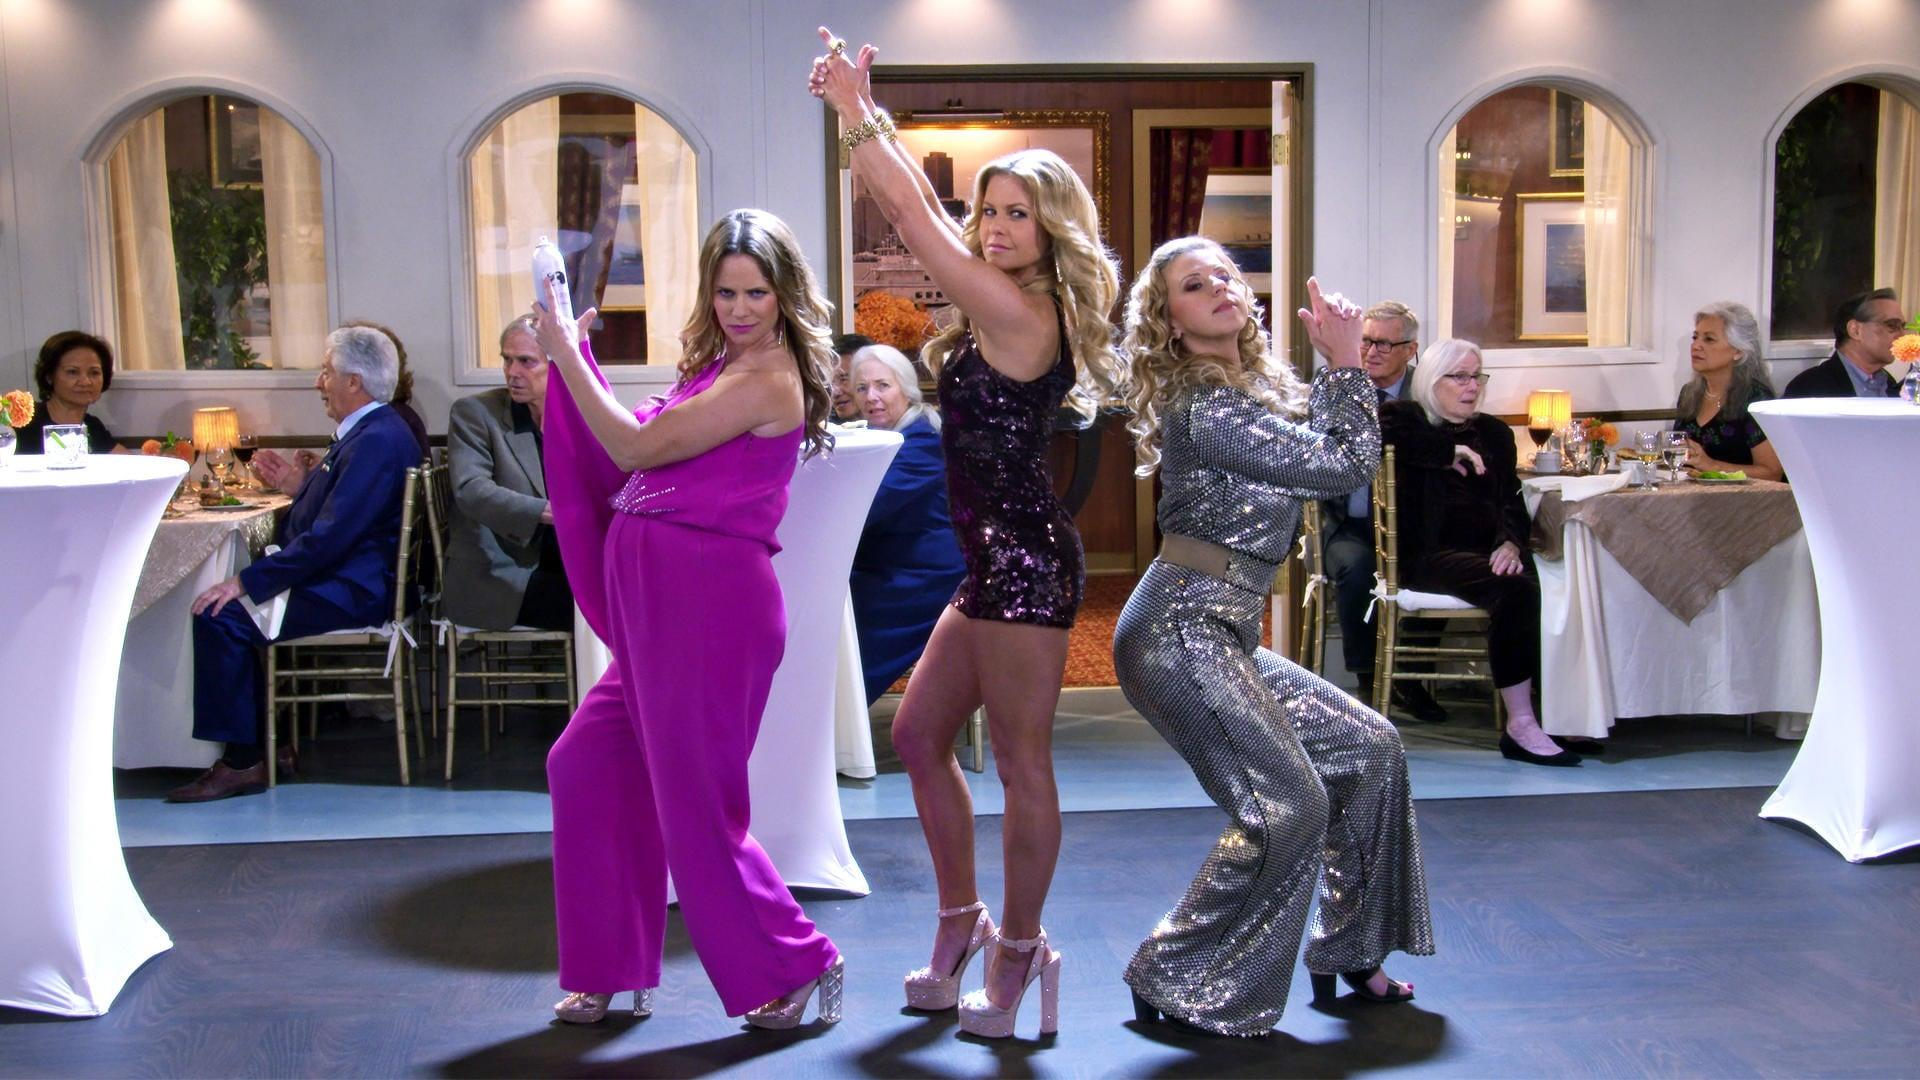 Fuller House (S04E06): Angels' Night Out Summary - Season 4 Episode